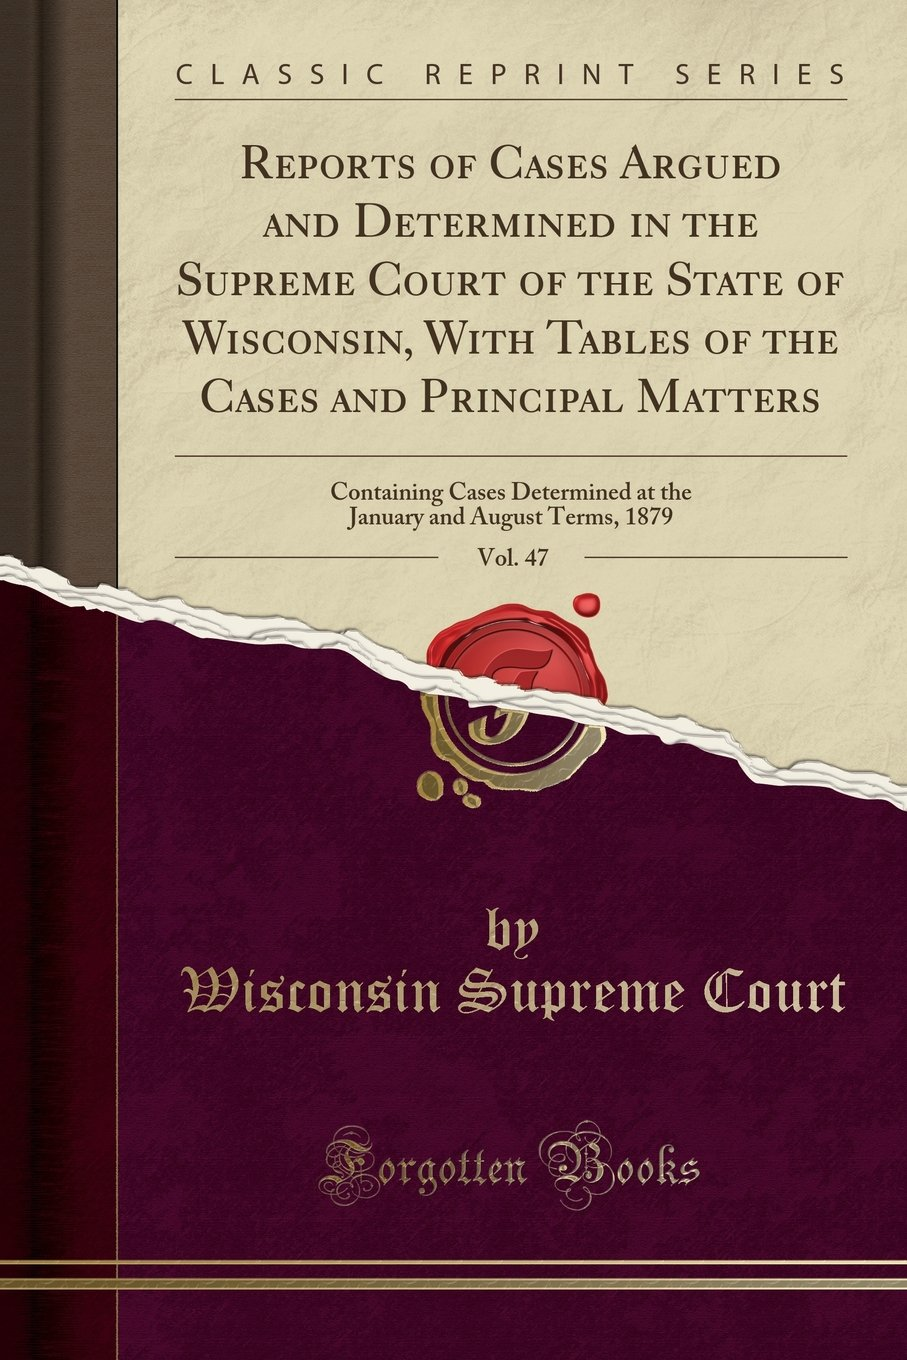 Reports of Cases Argued and Determined in the Supreme Court of the State of Wisconsin, With Tables of the Cases and Principal Matters, Vol. 47: ... and August Terms, 1879 (Classic Reprint) pdf epub